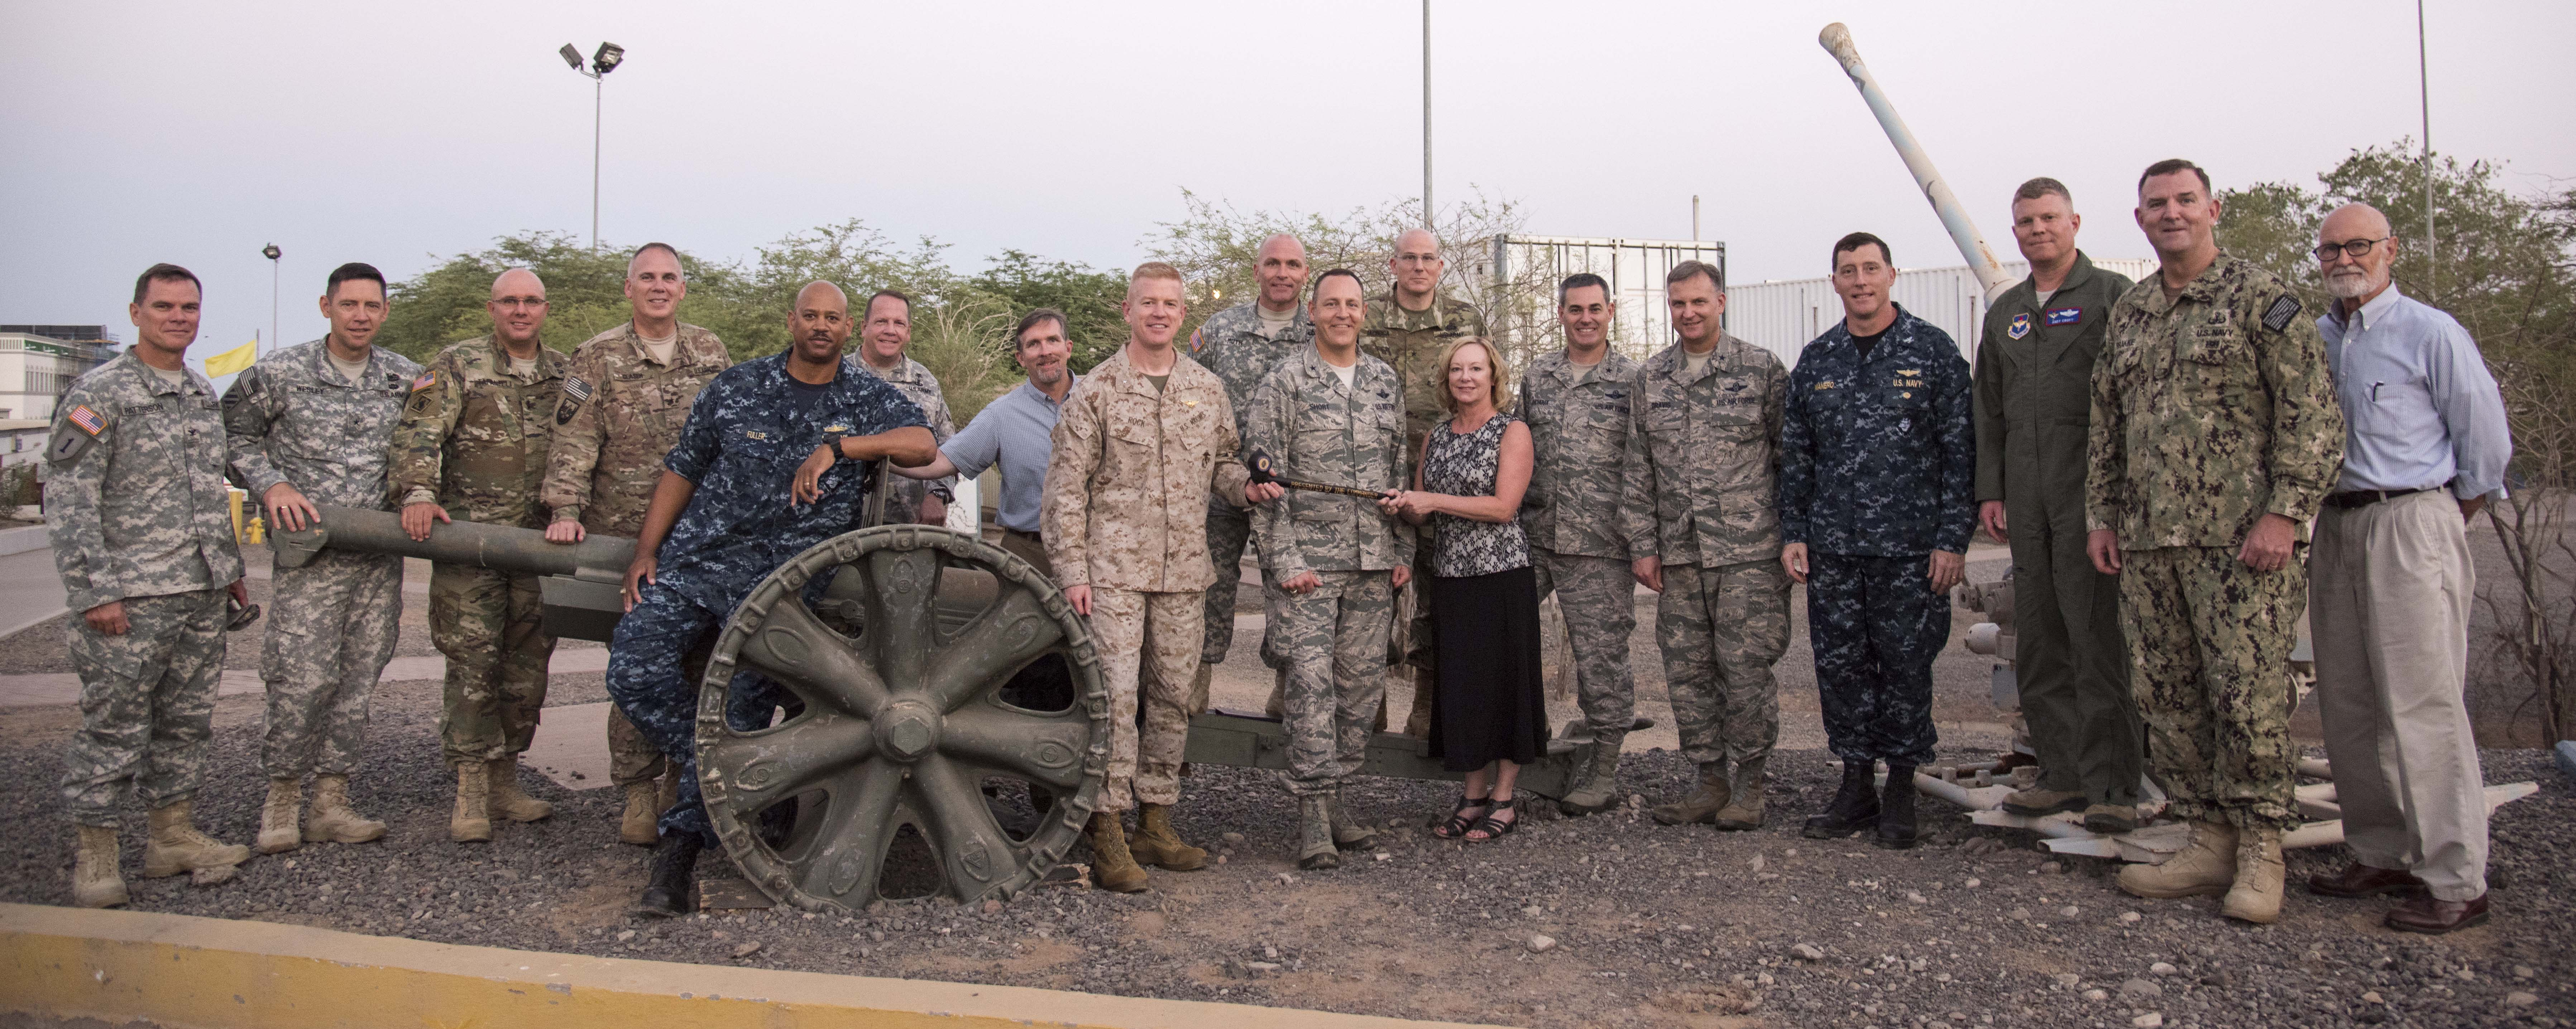 Fellows from the 2016-1 CAPSTONE course gather at the end of their tour of Camp Lemonnier, Djibouti, Oct. 14, 2015. The five-week CAPSTONE curriculum examines major issues affecting national security decision making, military strategy, joint/combined doctrine, interoperability, and key allied nation issues.  (U.S. Air Force photo by Staff Sgt. Victoria Sneed)